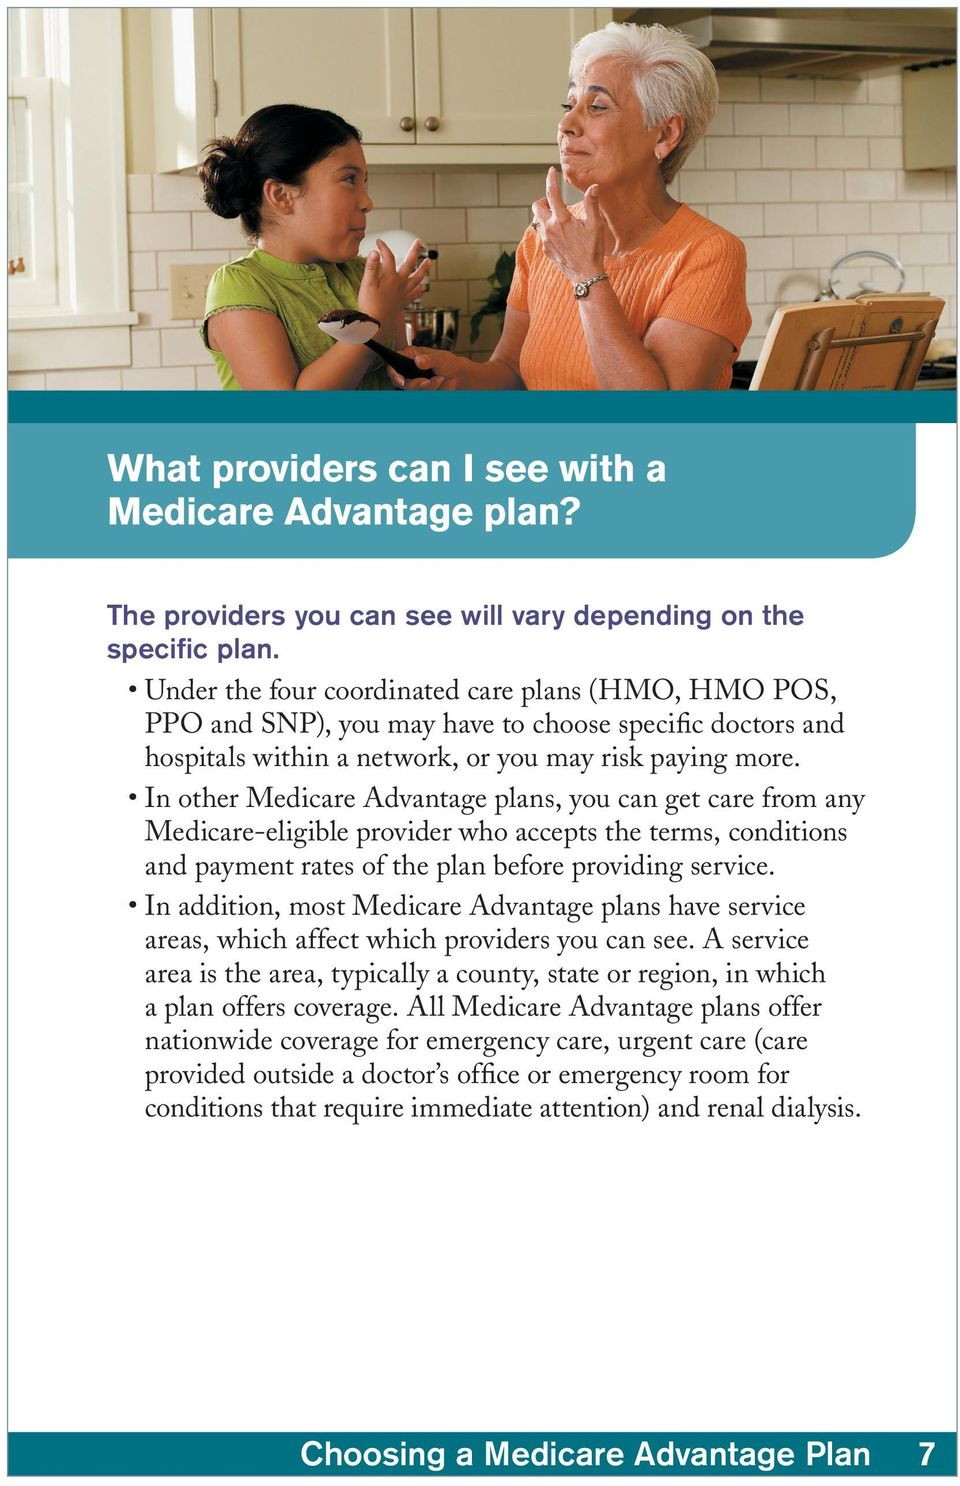 In other Medicare Advantage plans, you can get care from any Medicare-eligible provider who accepts the terms, conditions and payment rates of the plan before providing service.